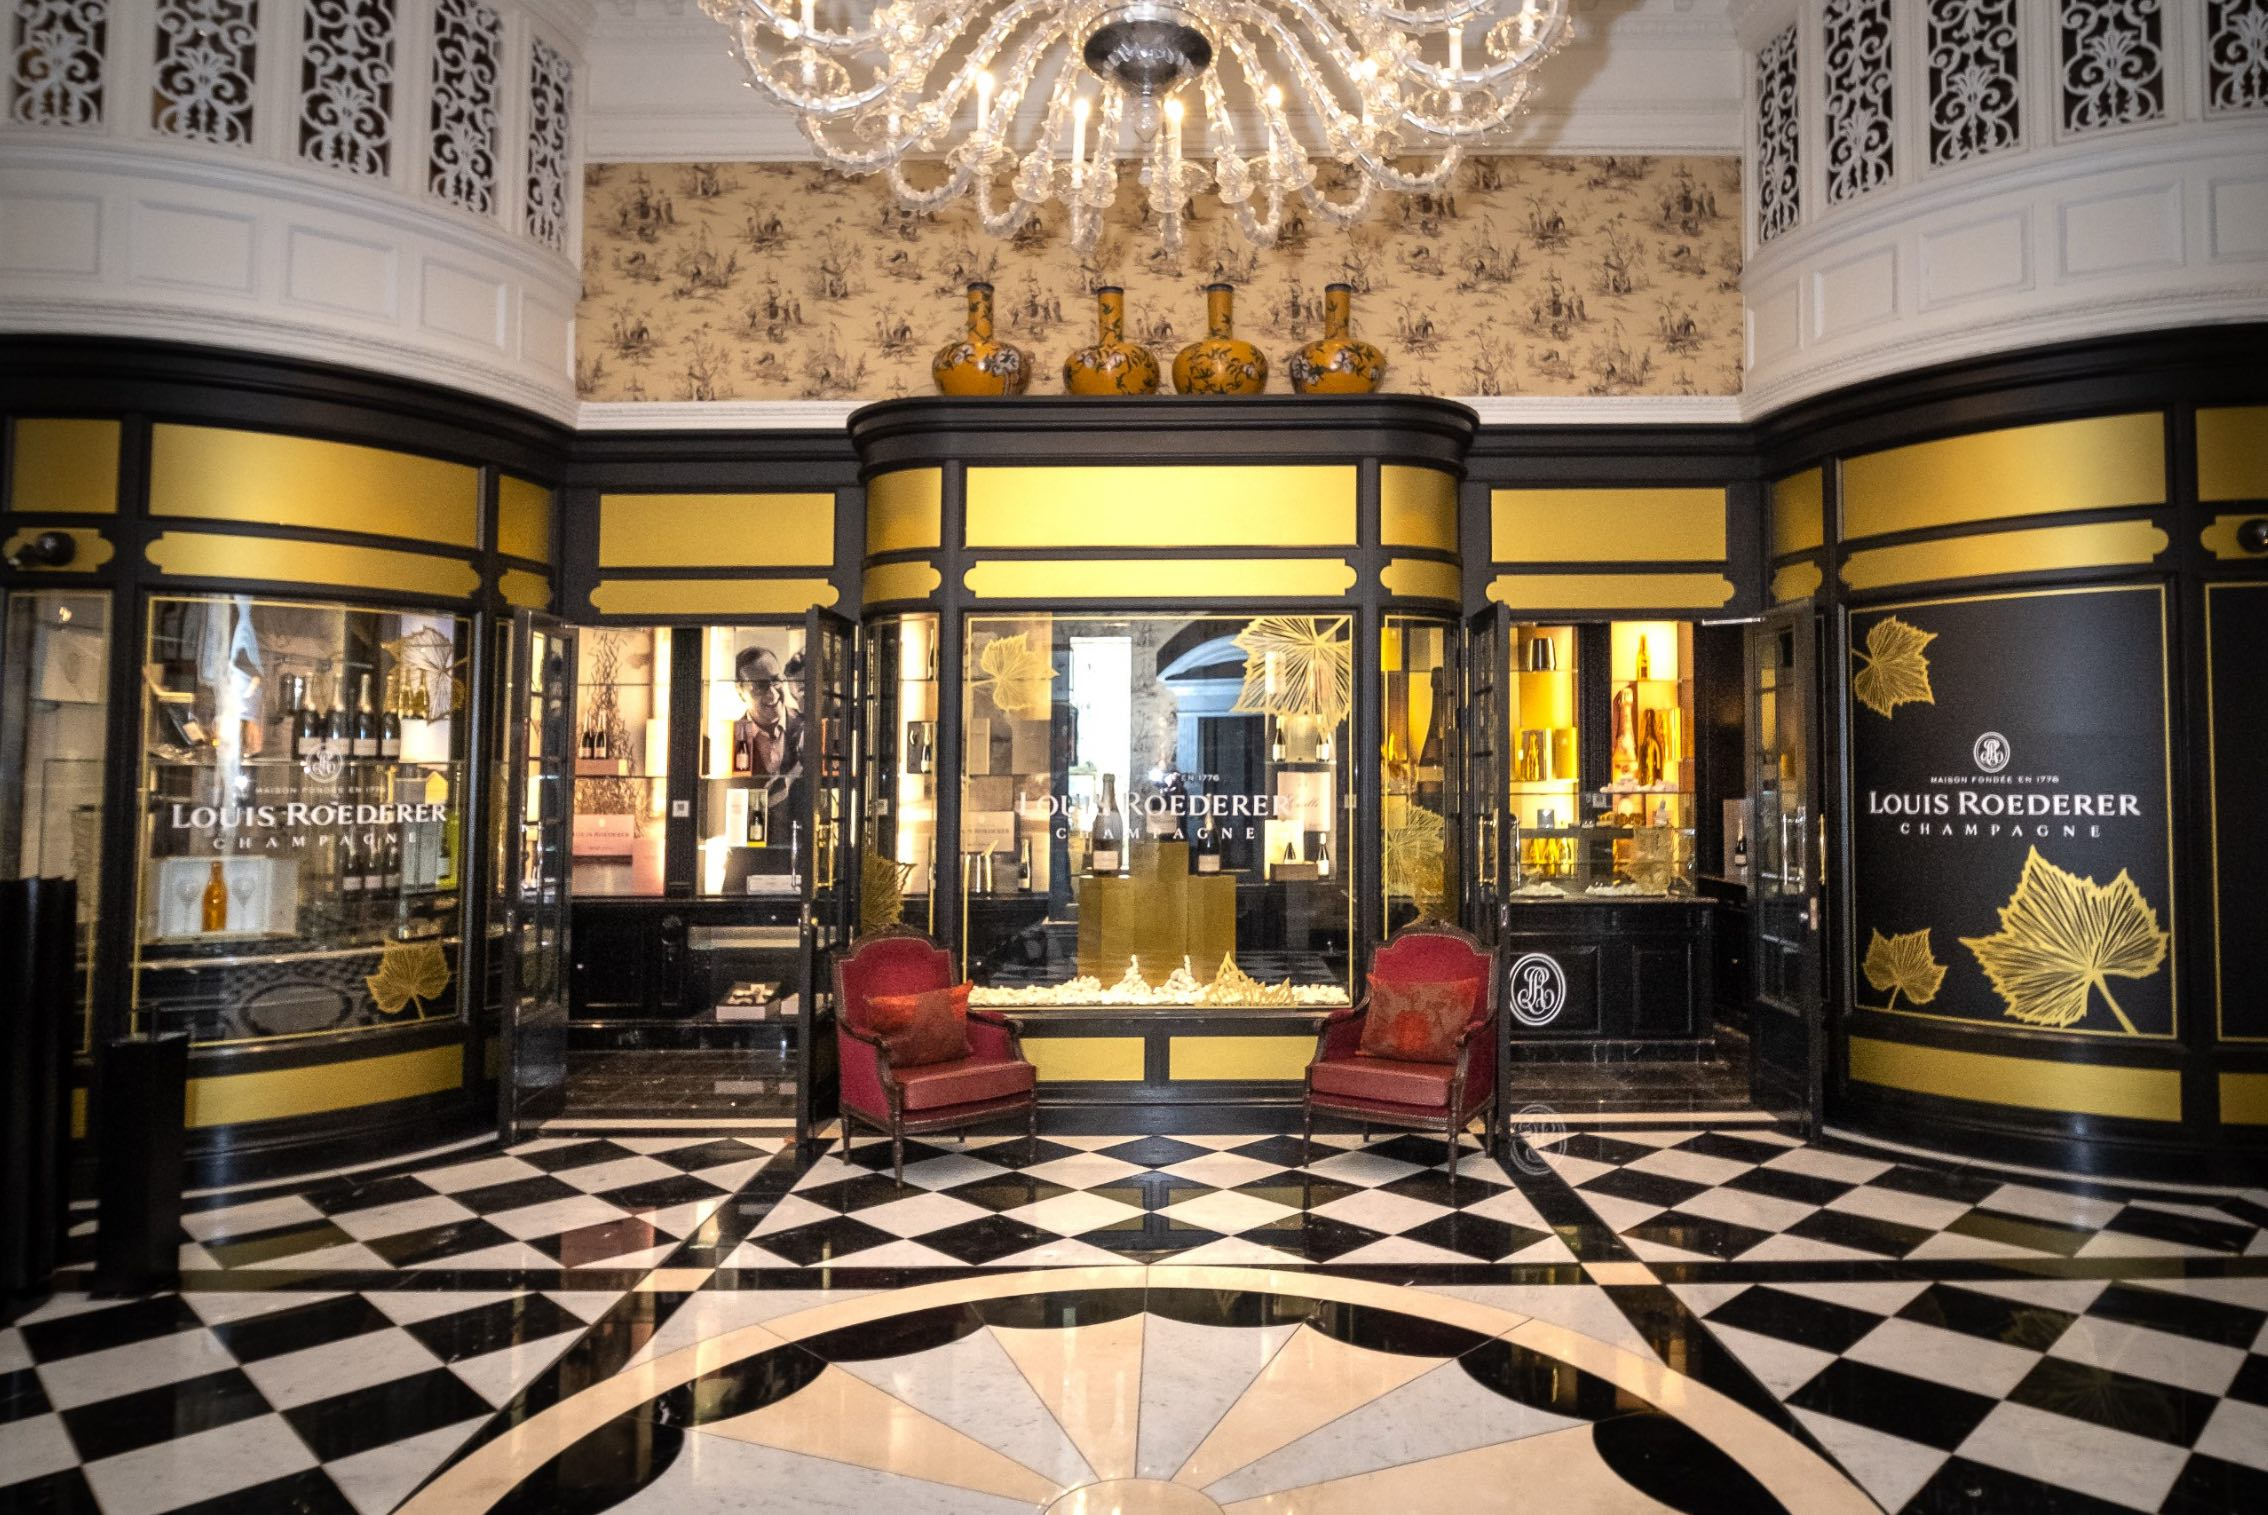 Louis Roederer Champagne Boutique Launches at The Savoy, London